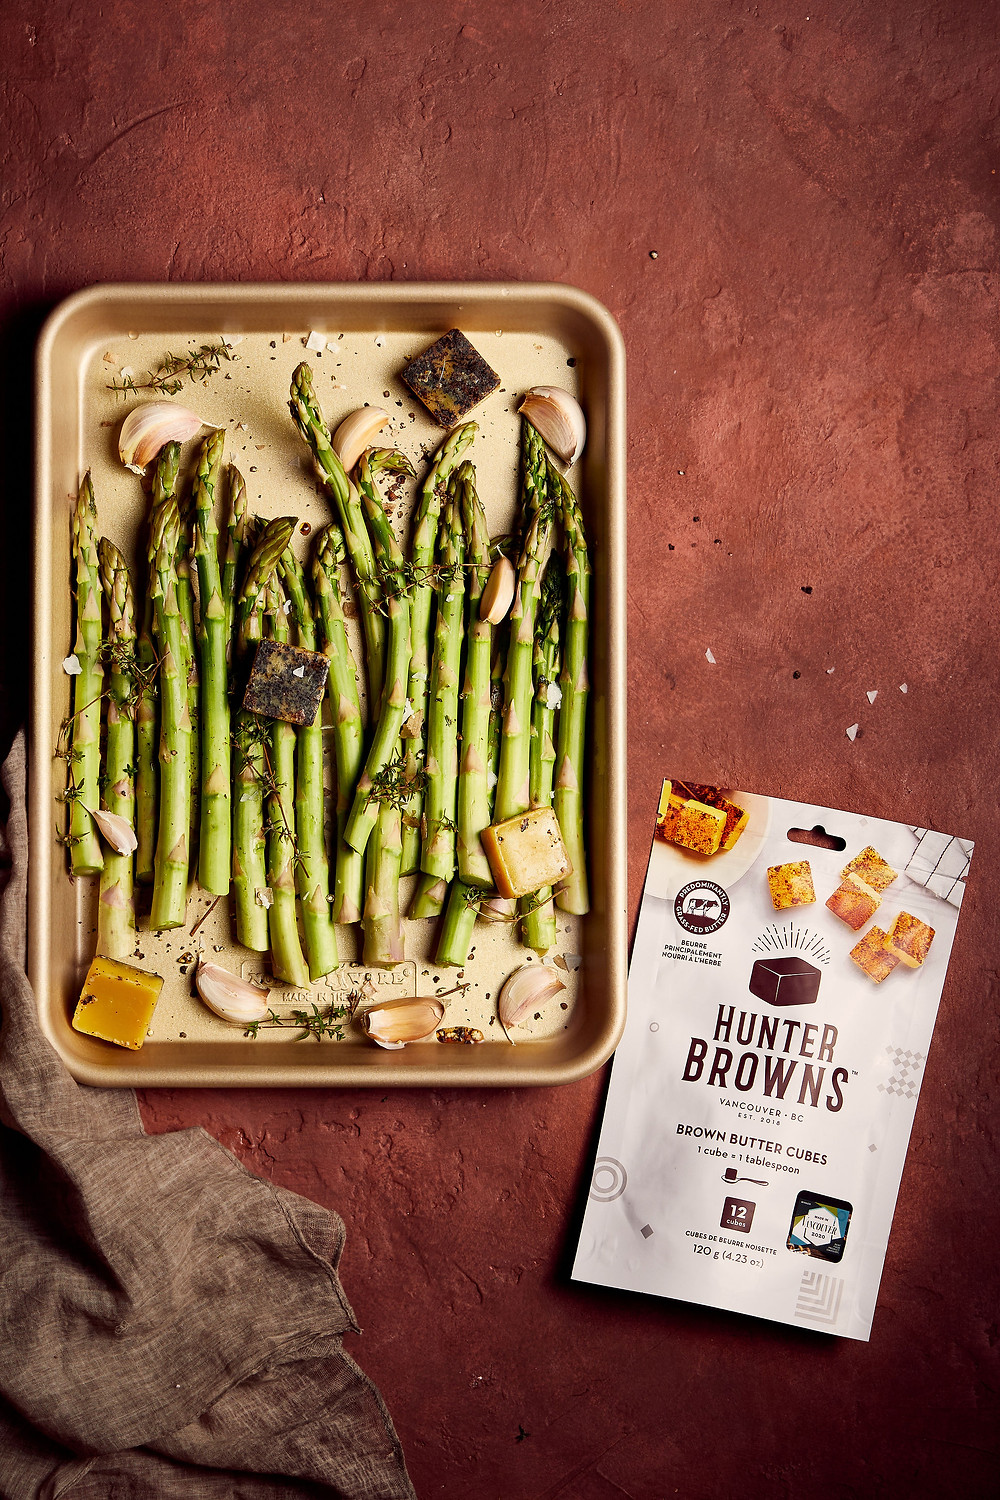 Roasted Asparagus with bag of Hunter Browns' Brown Butter Cubes